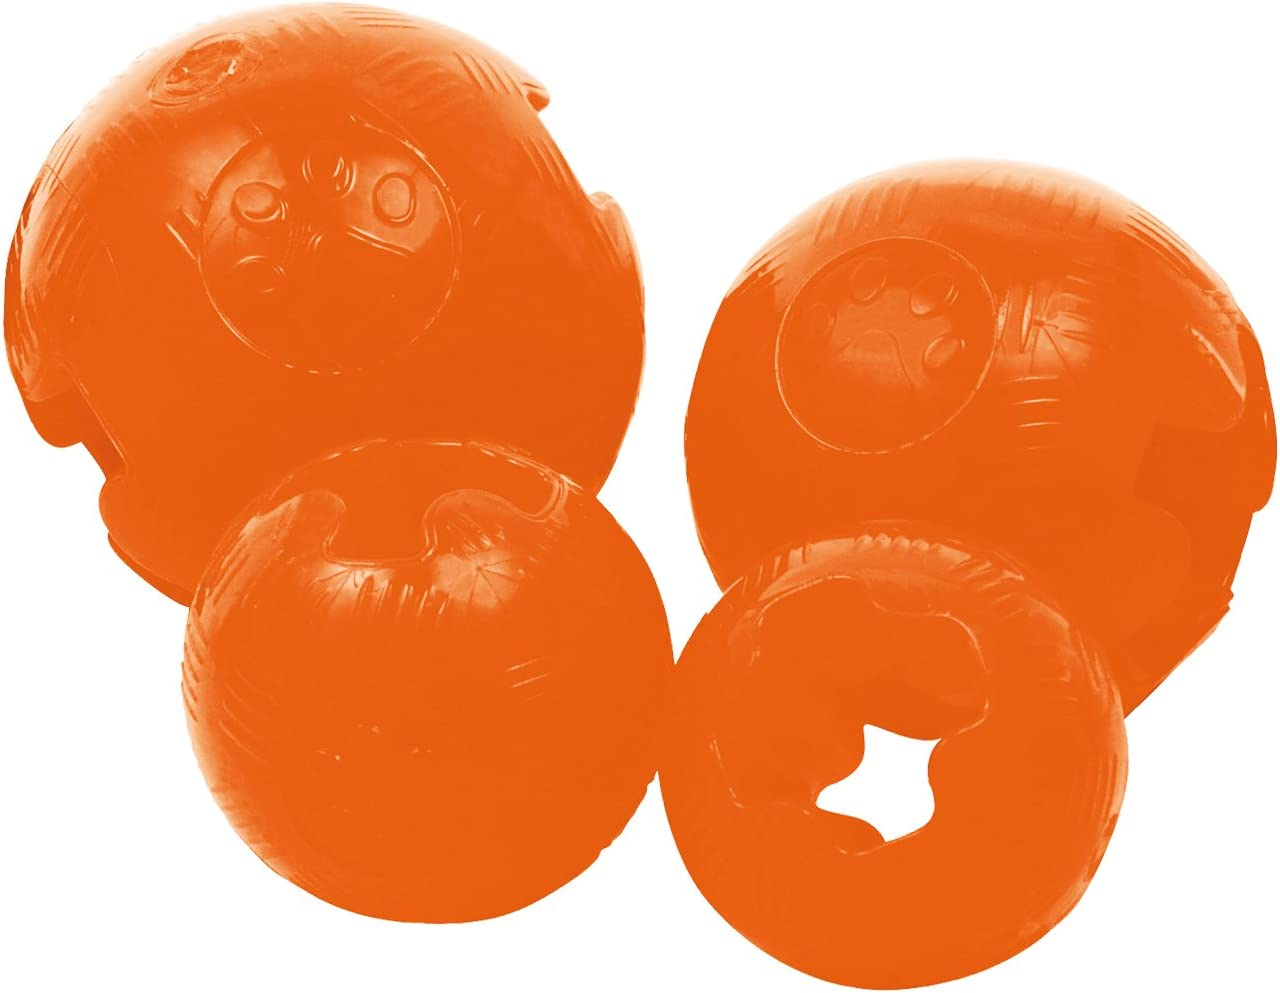 Gloria JU00510 Pelota TPR Mini Diamentro 5.7 cm, Naranja: Amazon ...